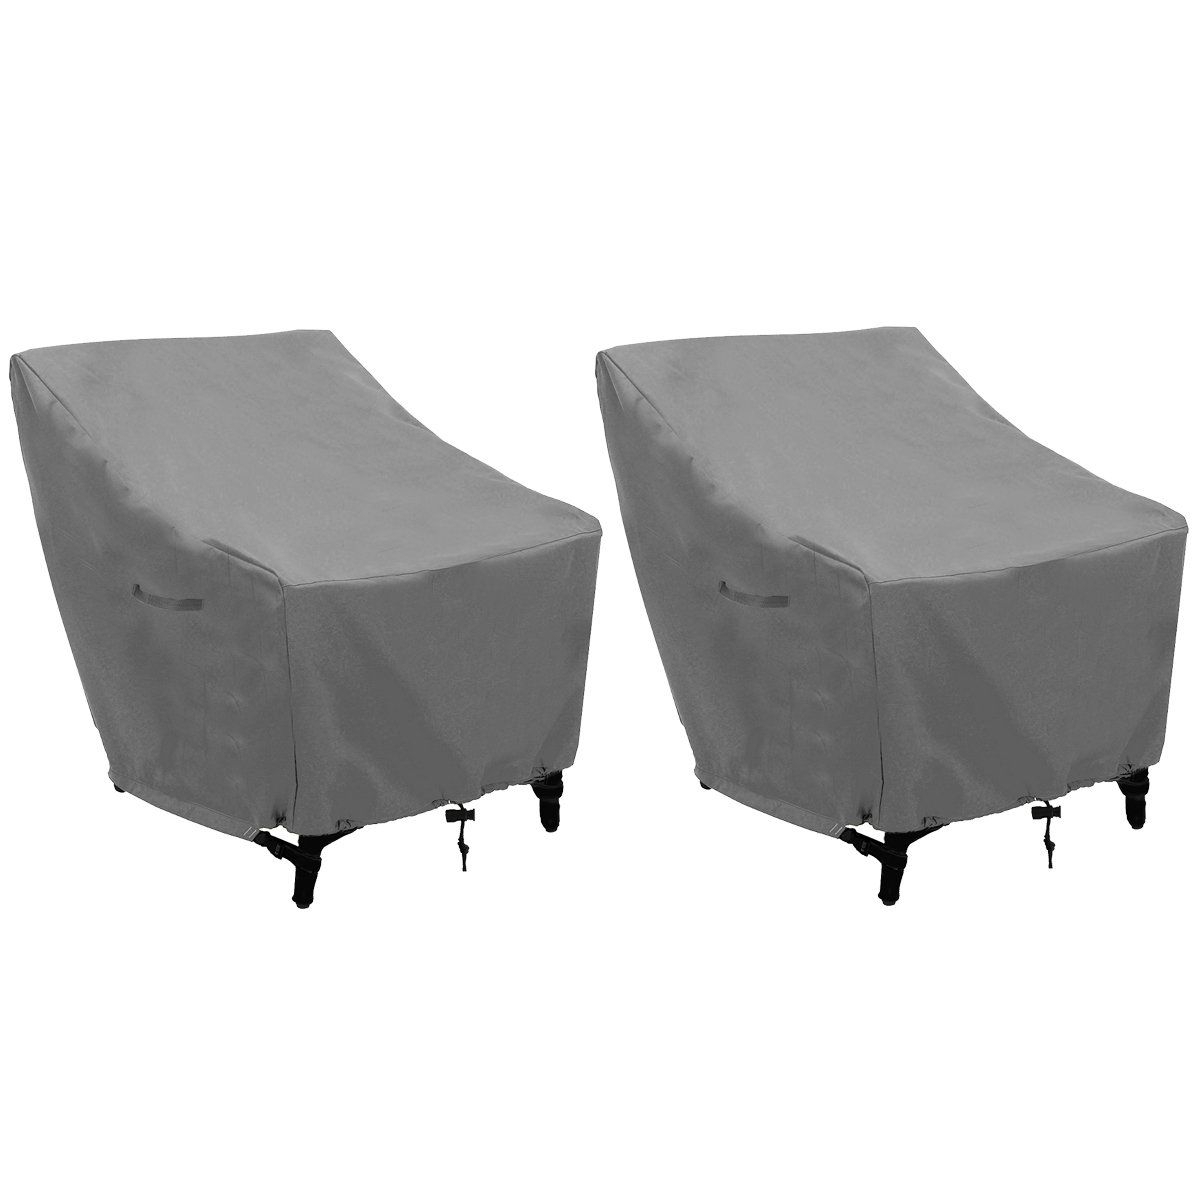 Patio Chairs Cover Outdoor Chairs Covers Stackable Chairs with regard to proportions 1200 X 1200